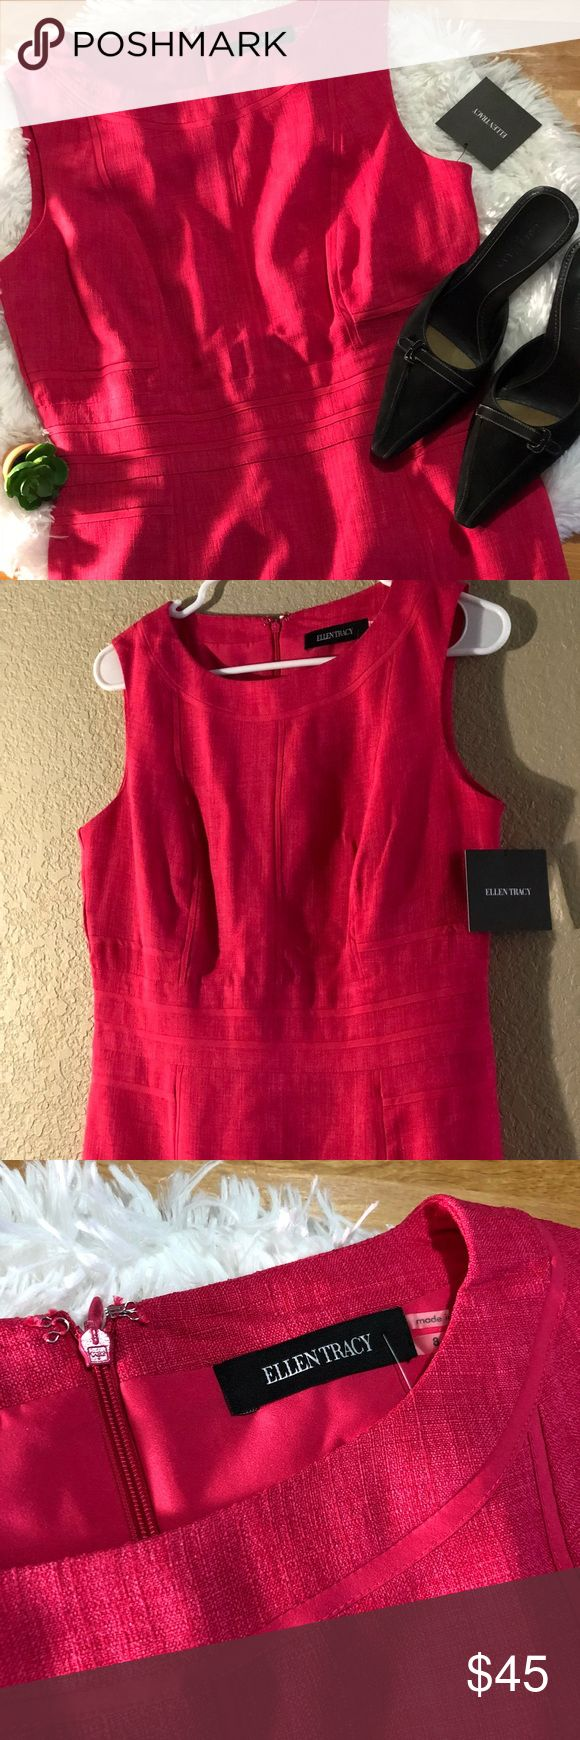 """NWT Ellen Tracy Rose Sleeveless Dress New with tags  All measurements are taken laying flat  18"""" armpit to armpit  38"""" length- top of shoulder to bottom hem Ellen Tracy Dresses Midi"""